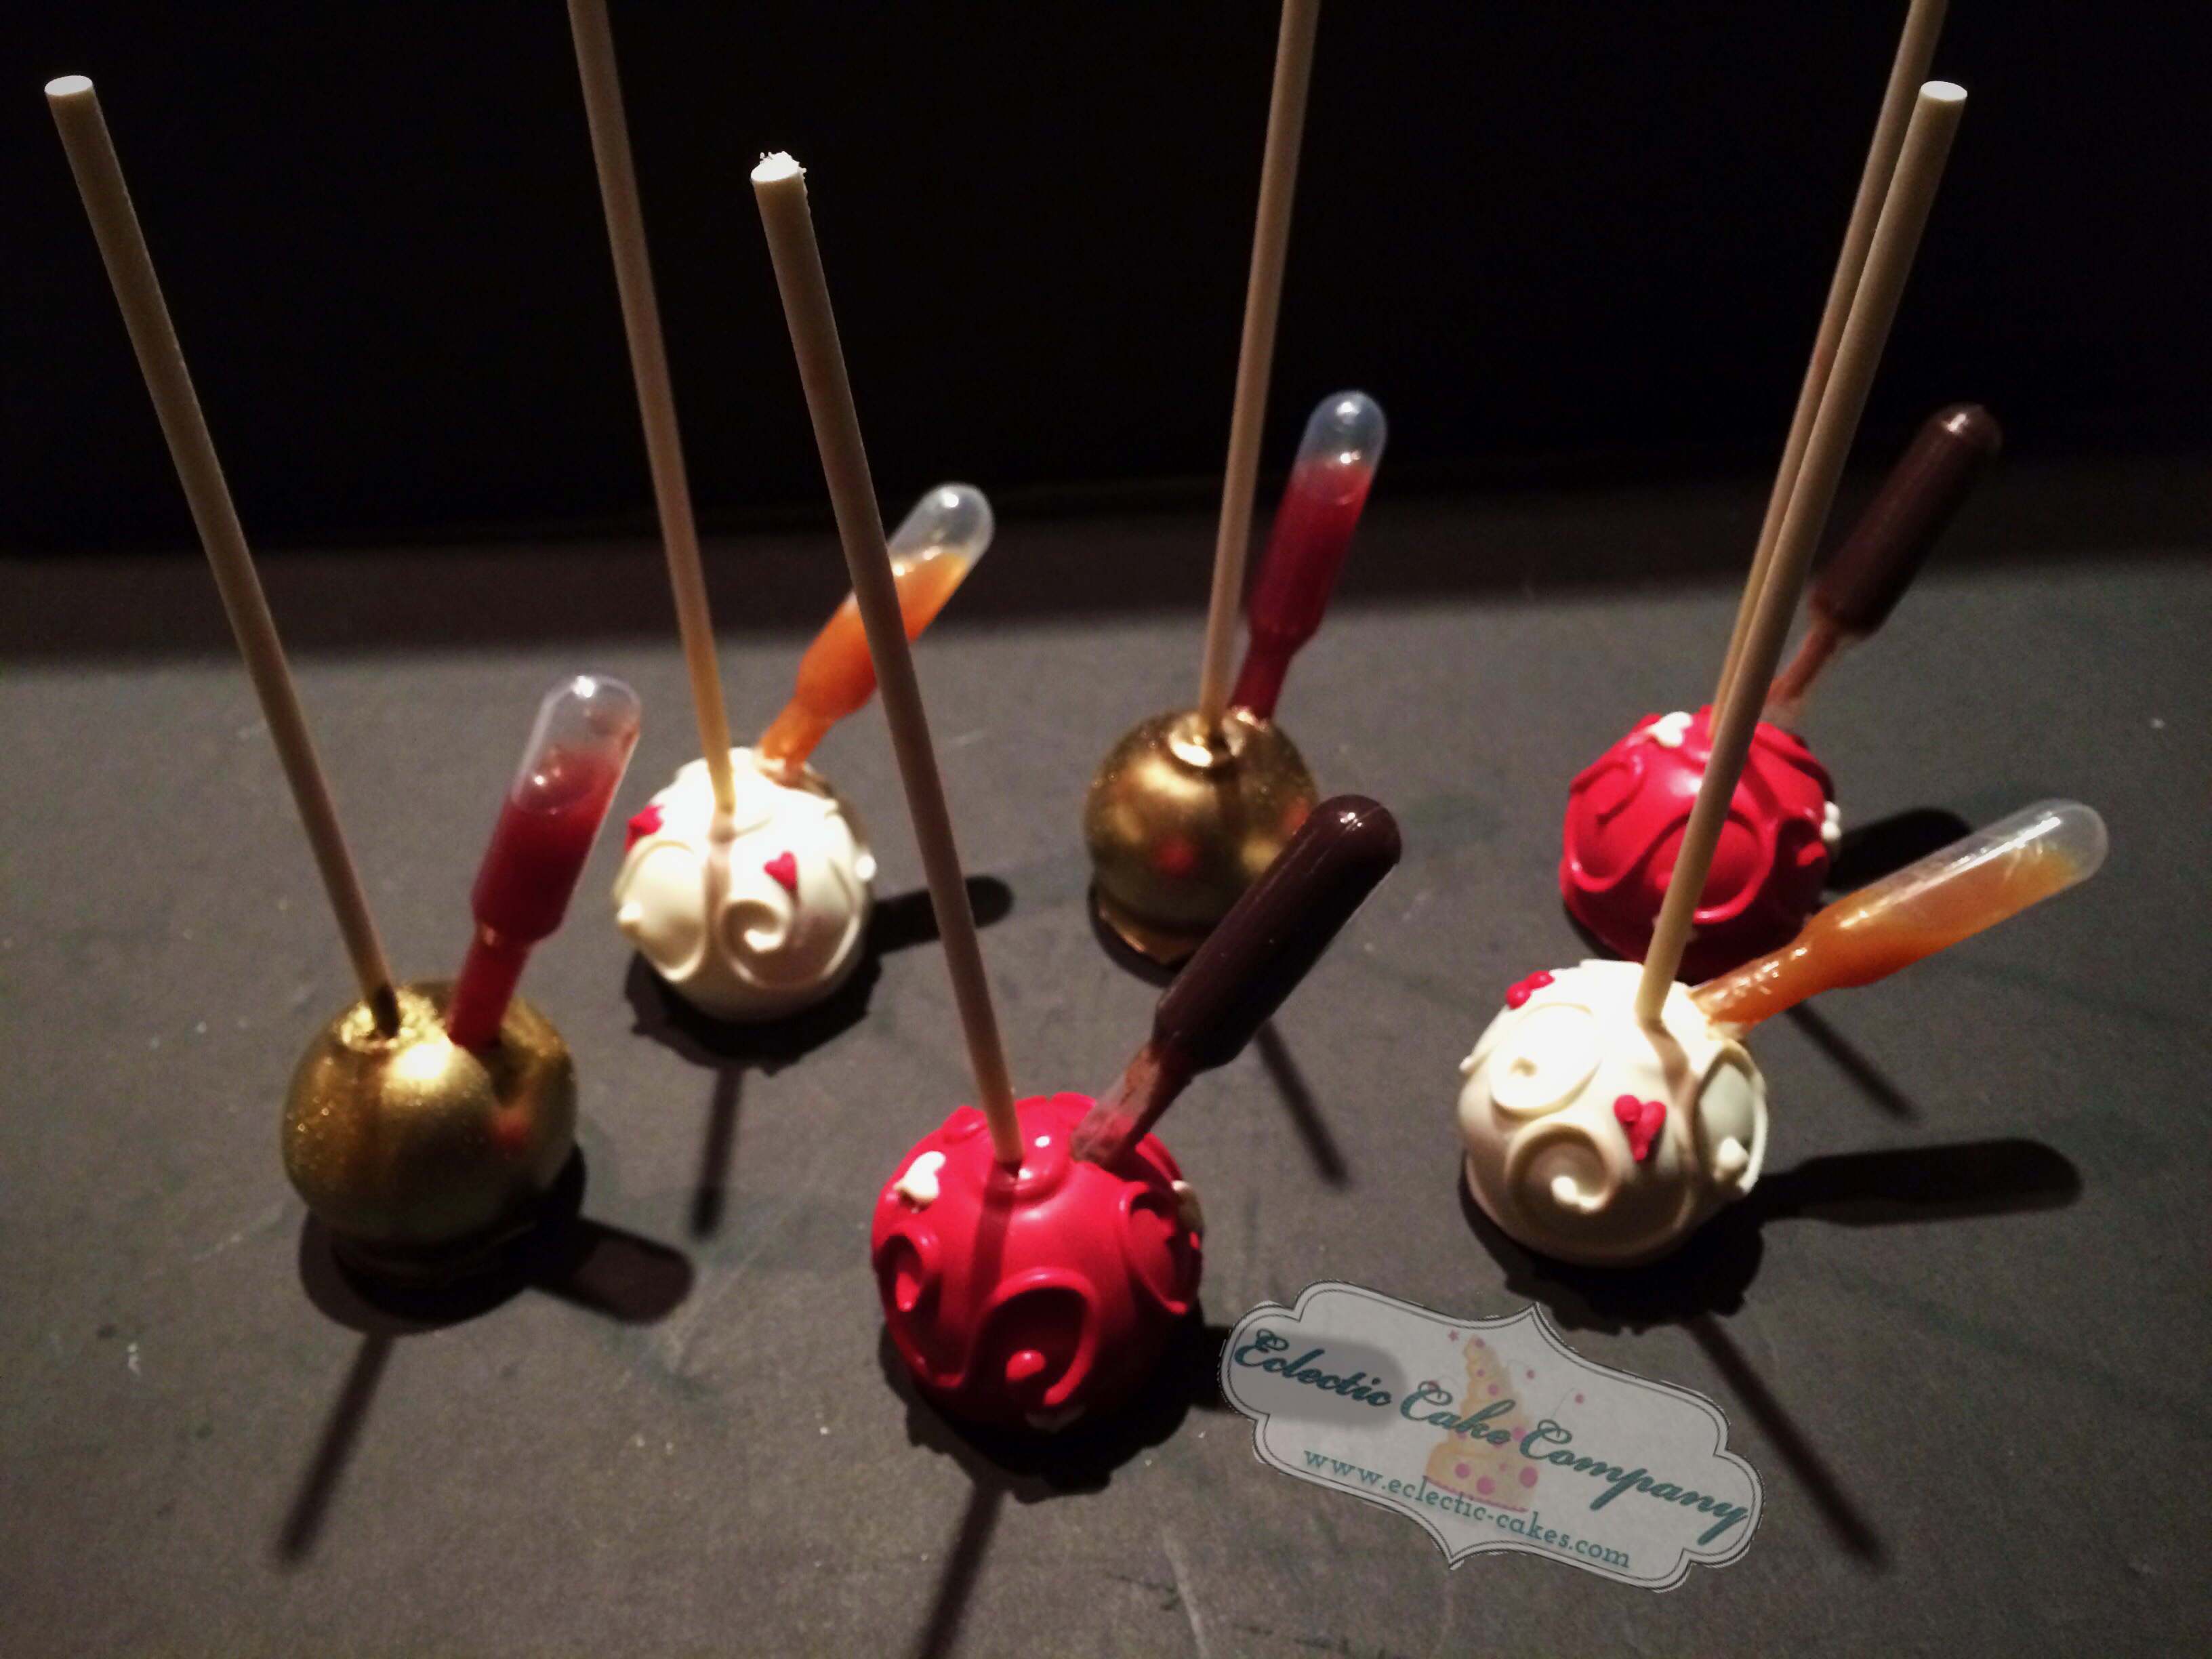 Cakepops w/ Pipette of extra flavor*